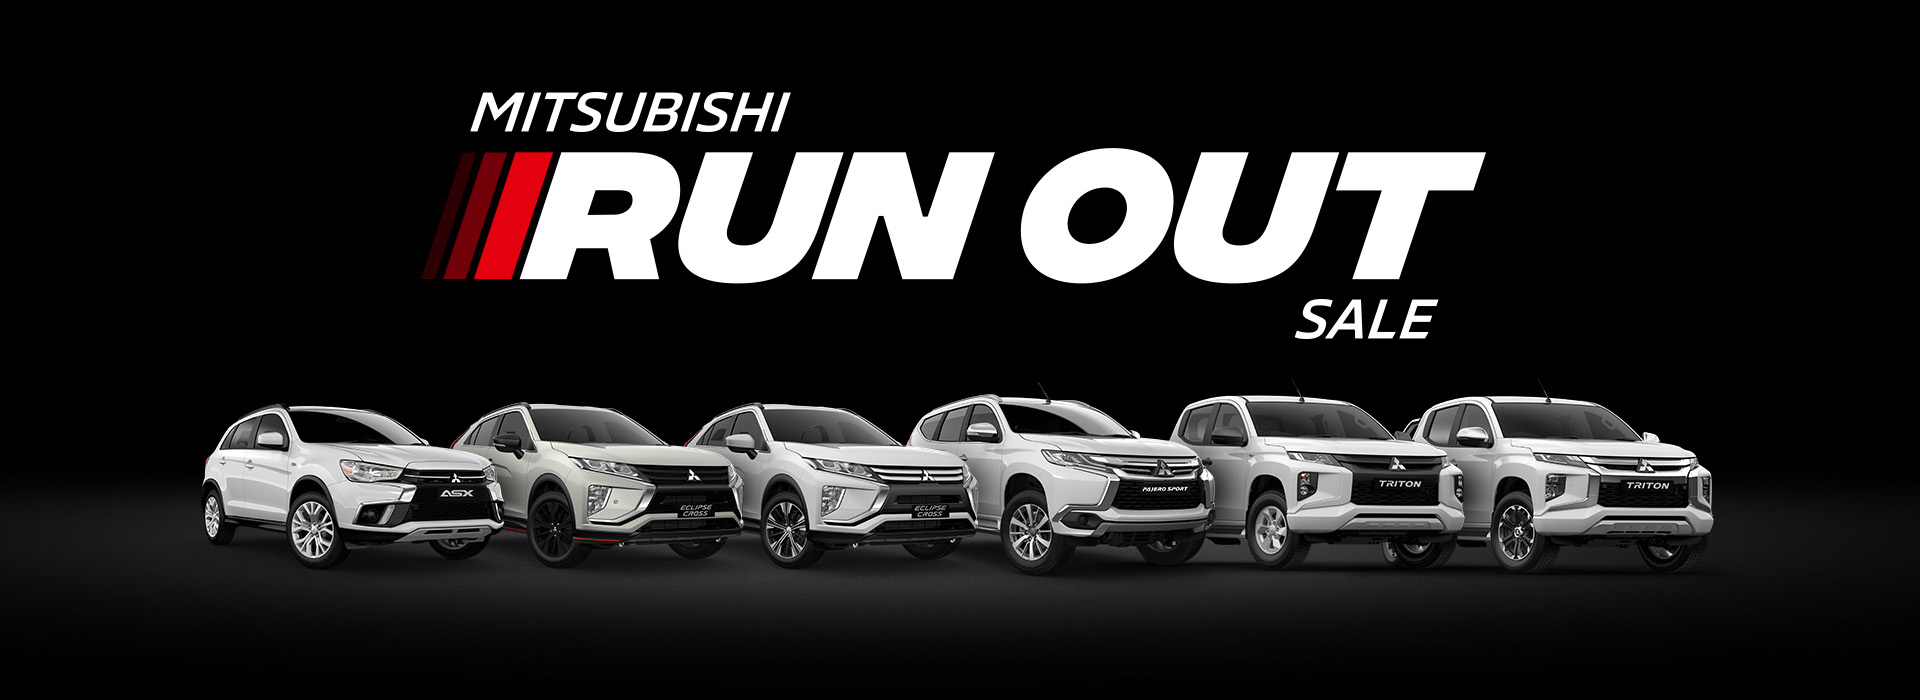 Mitsubishi Run Out Sale